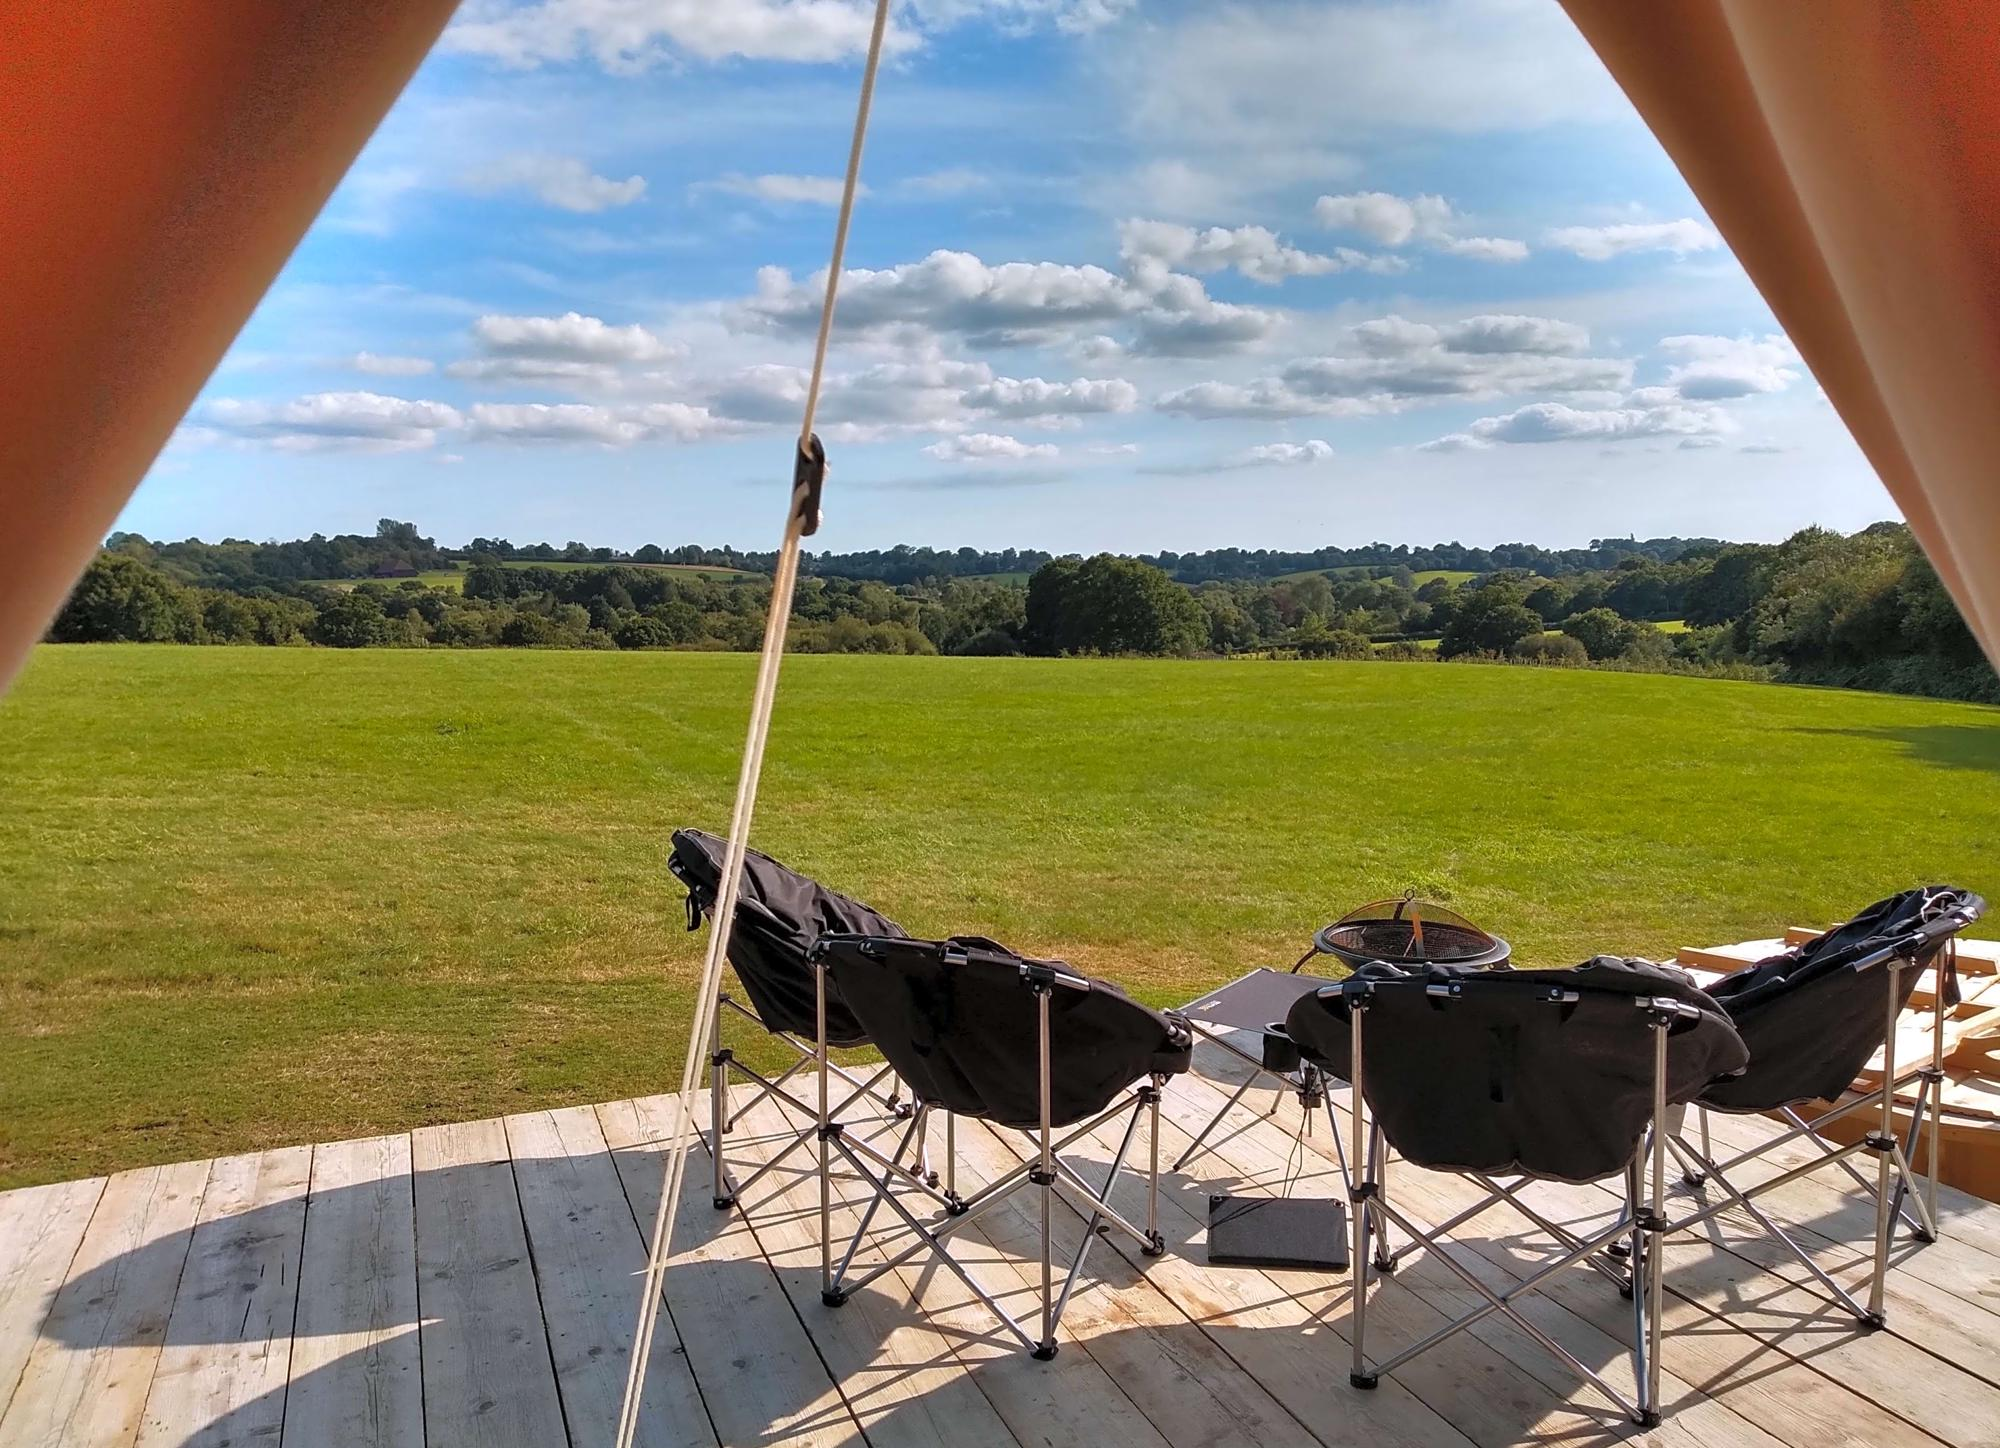 Glamping in Uckfield – Cool Camping